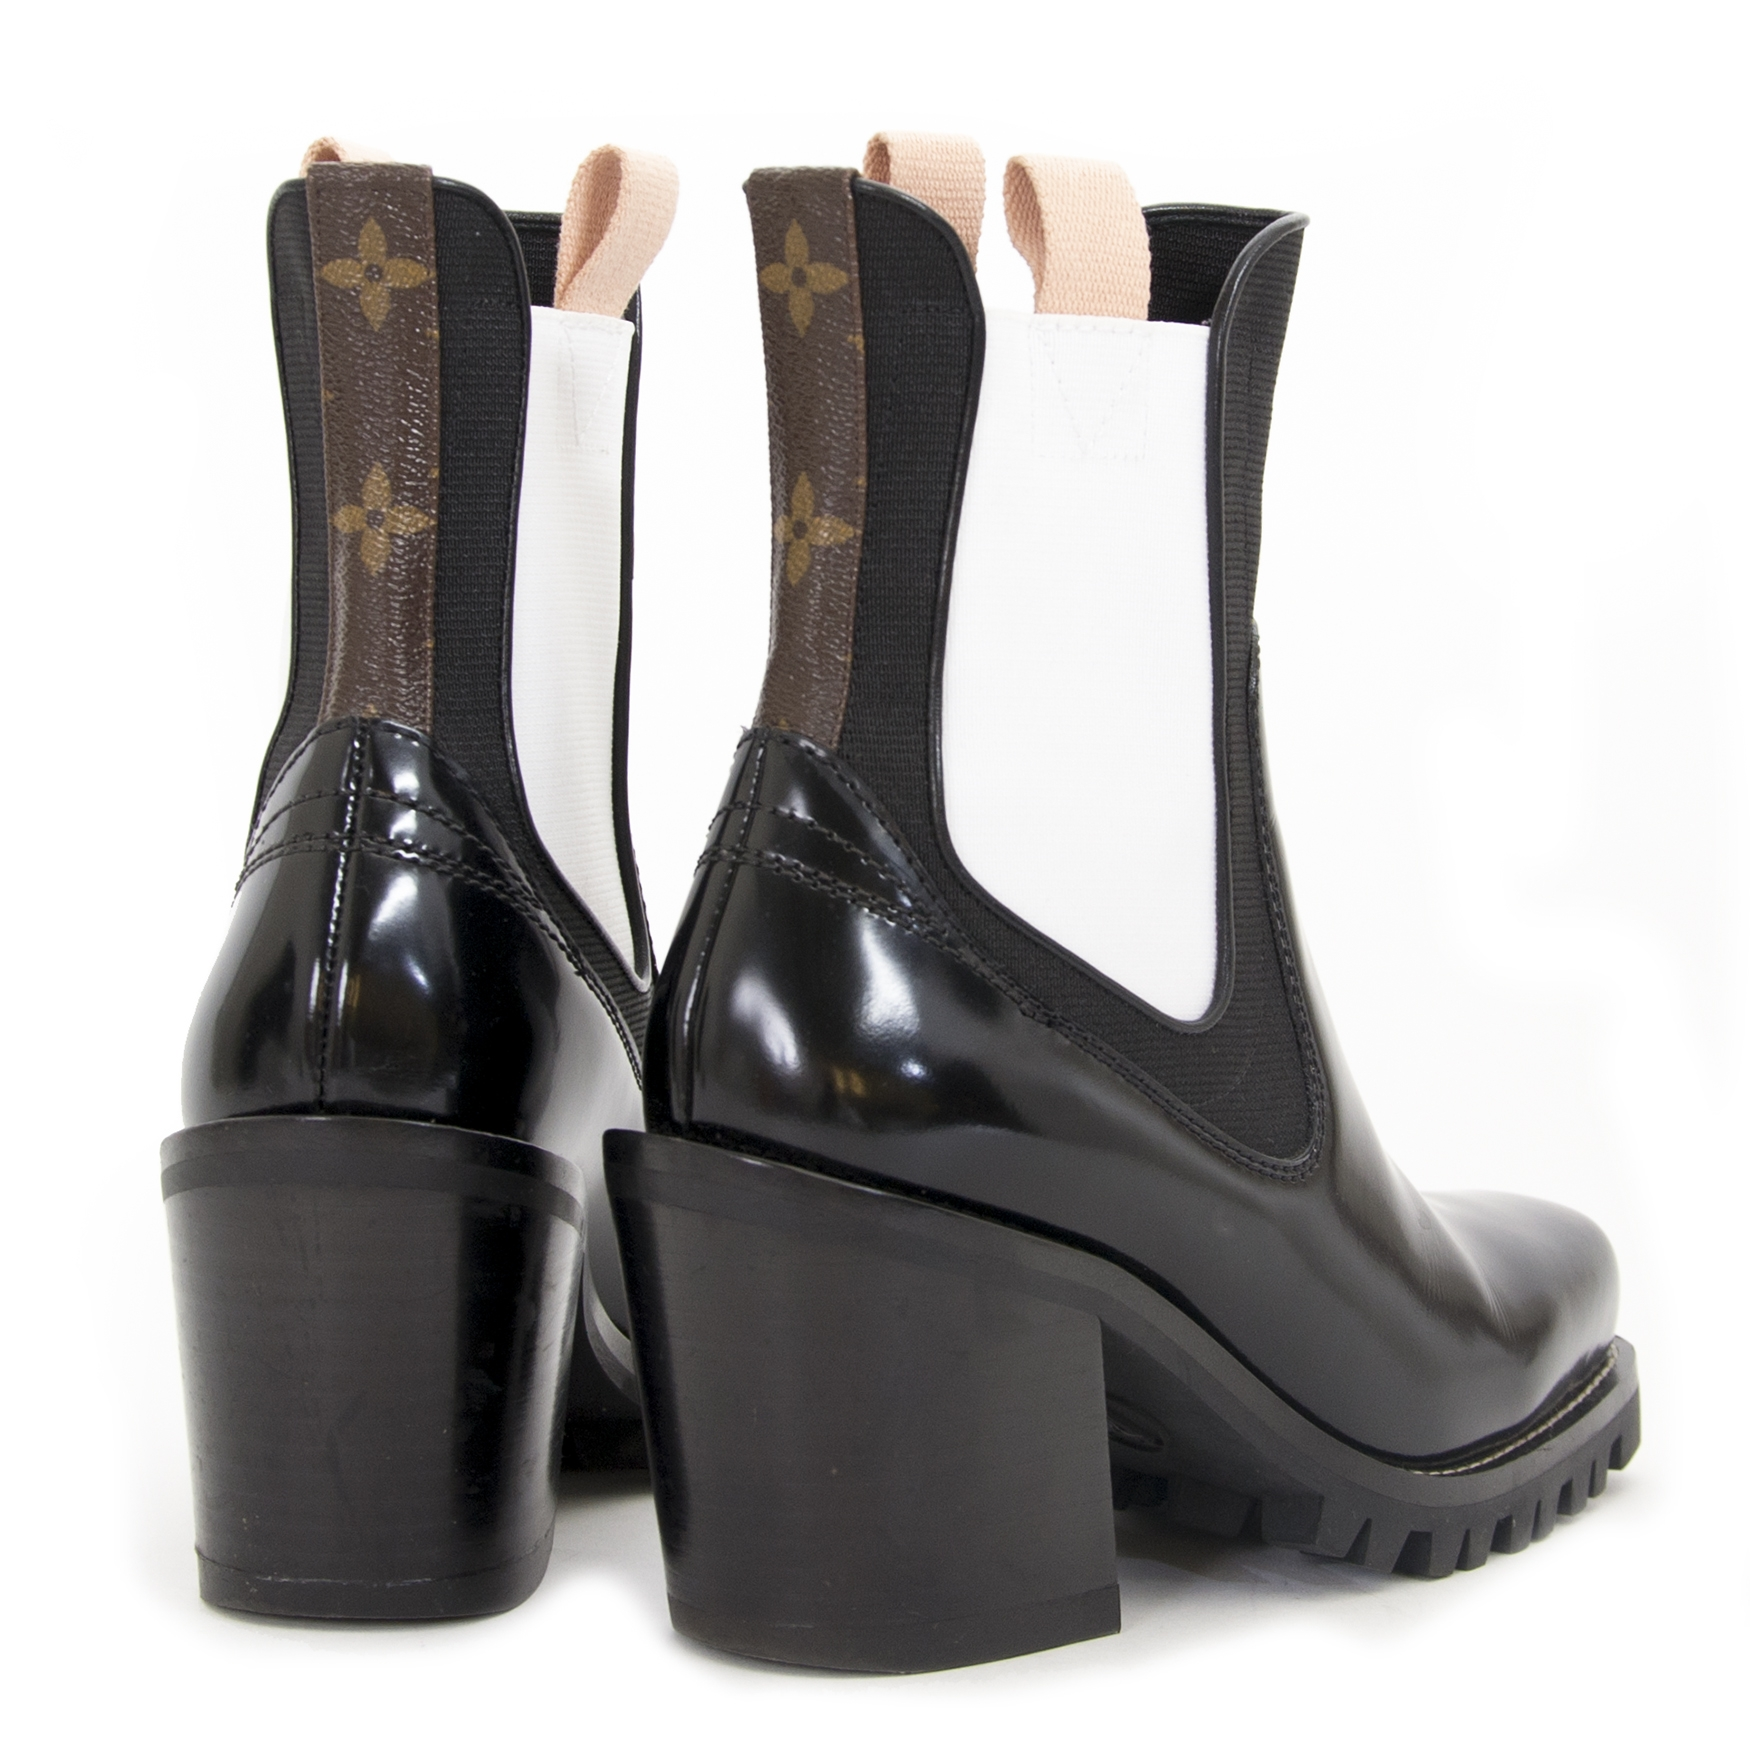 33dd815ee1a9 ... at Labellov Luxury in Antwerp Louis Vuitton Limitless Ankle Boots te  koop